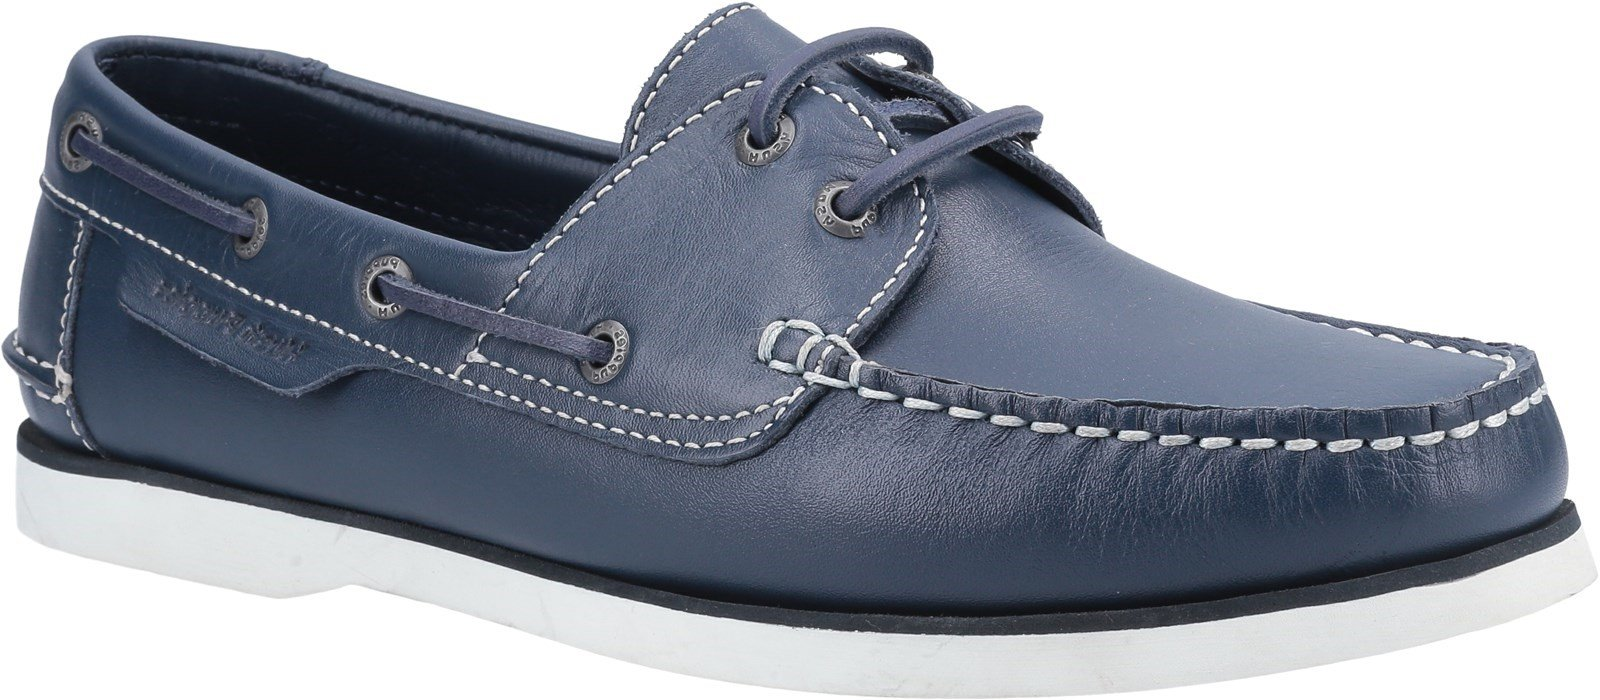 Hush Puppies Men's Henry Classic Lace Up Loafer Various Colours 28365 - Blue 6